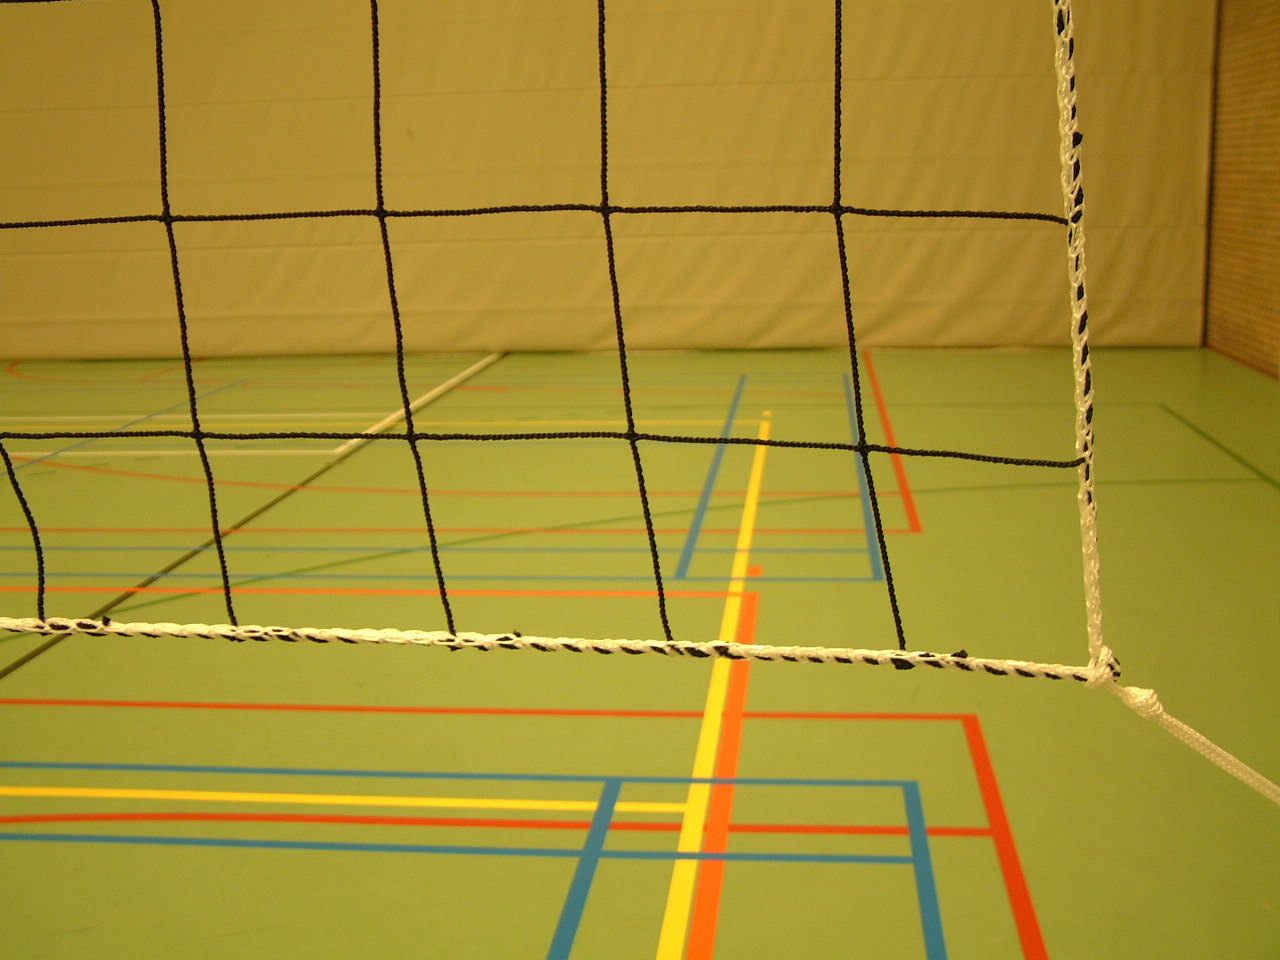 Filet de pratique de volley-ball